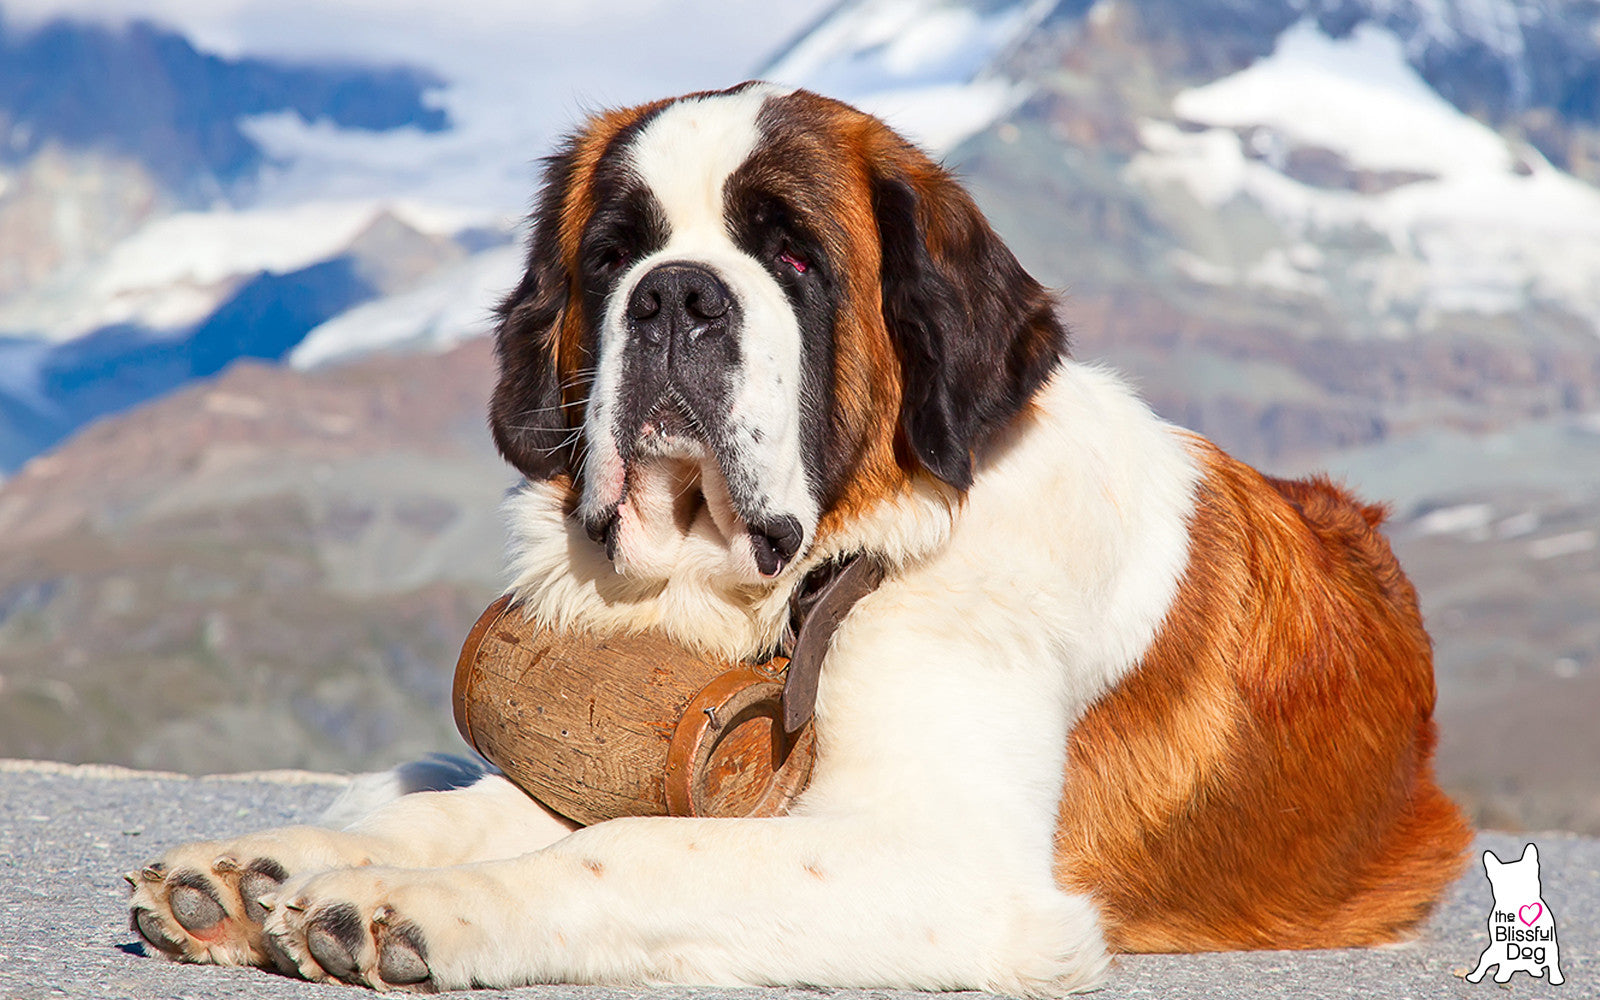 The Blissful Dog ST BERNARD COLLECTION For Dry Noses ...